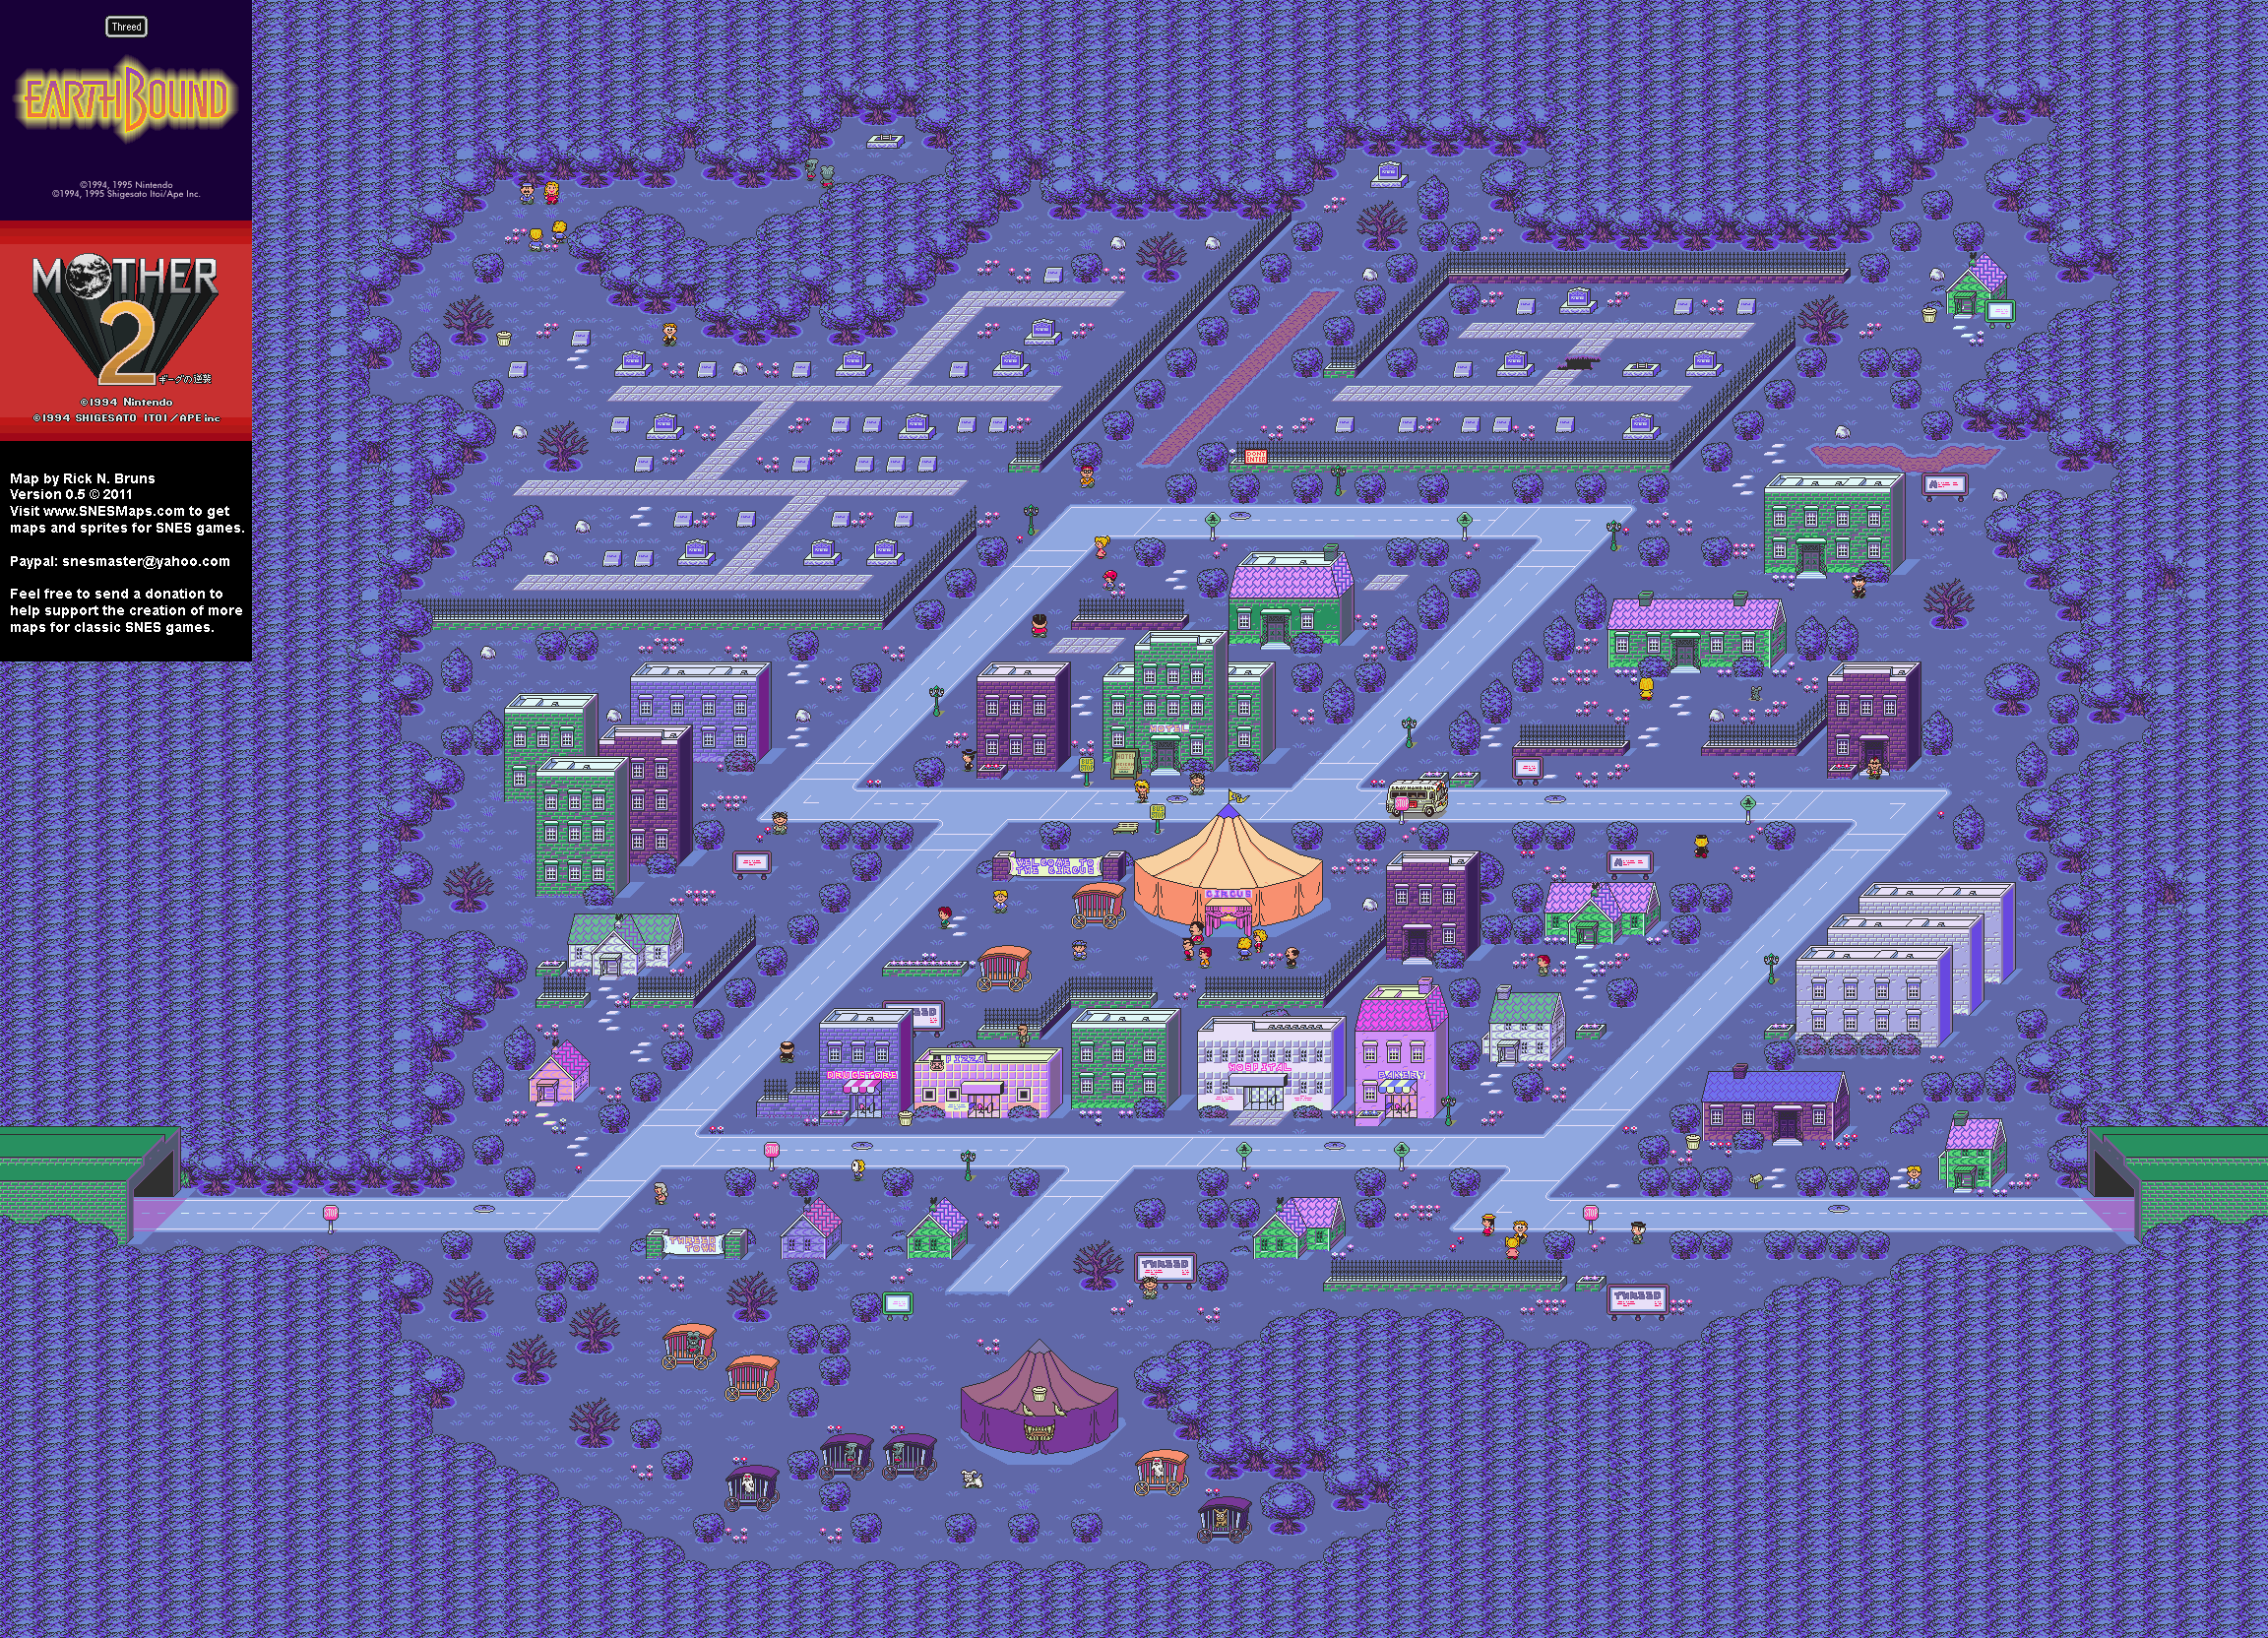 EarthBound (Mother 2) - Threed Super Nintendo SNES Map